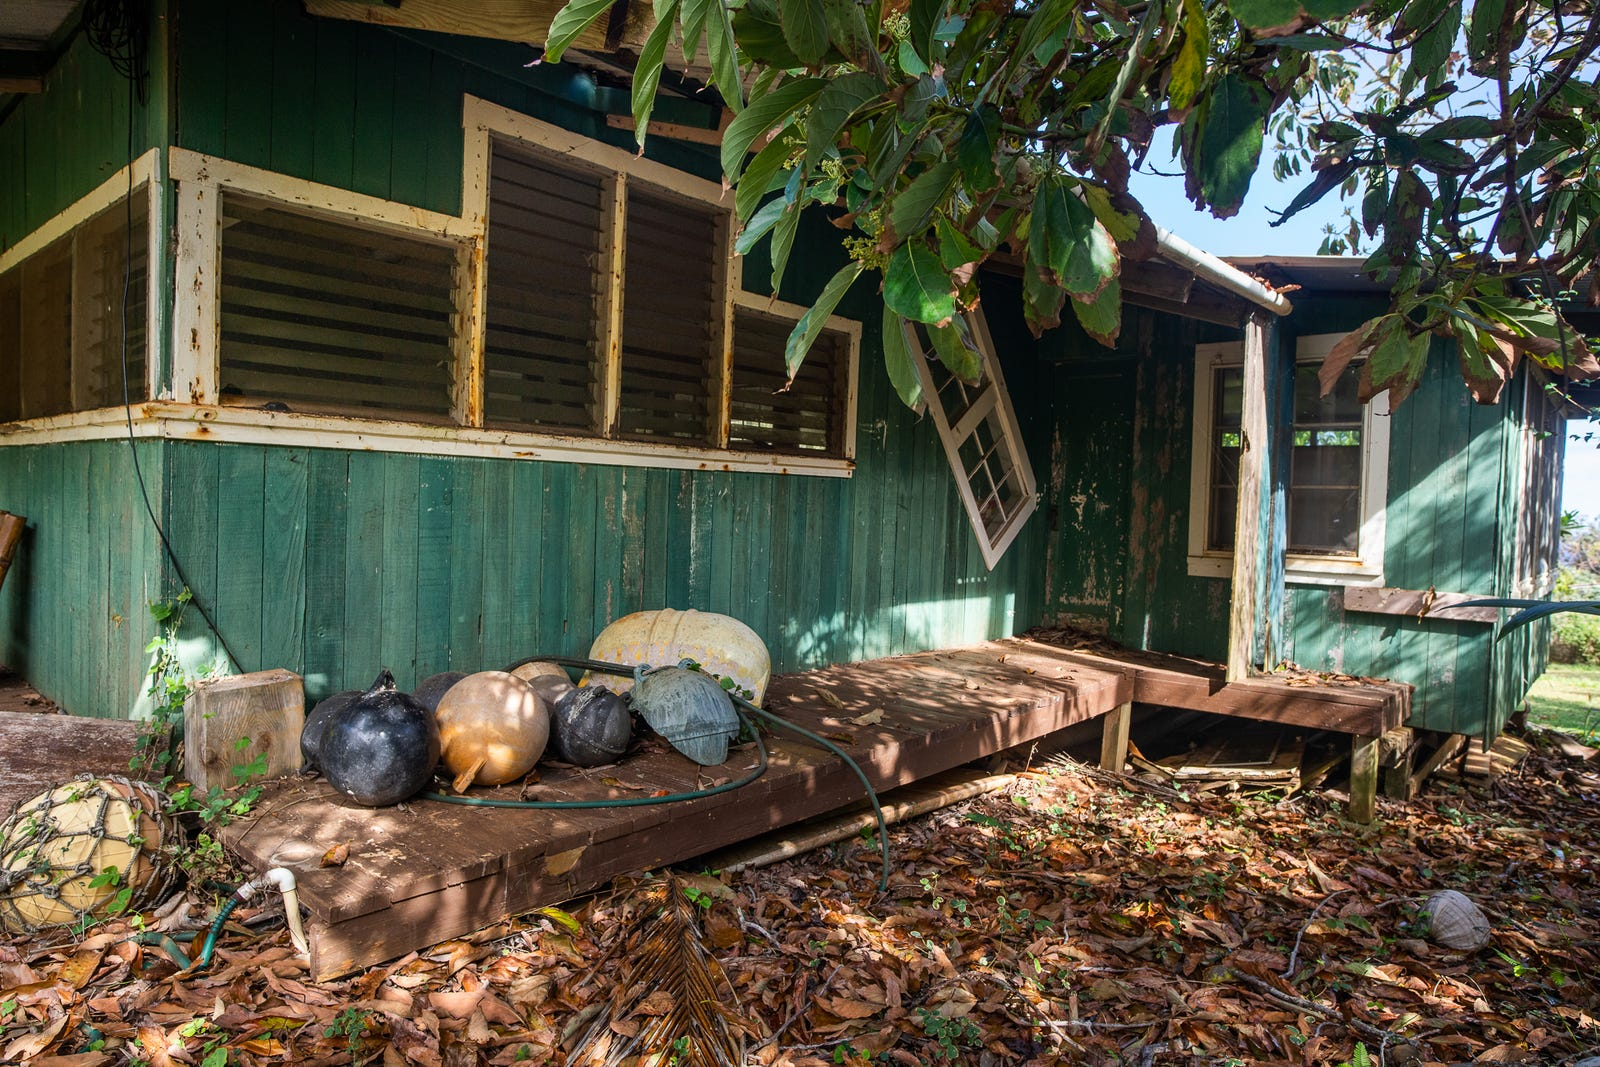 The home Carlos Andrade built out of recycled materials.